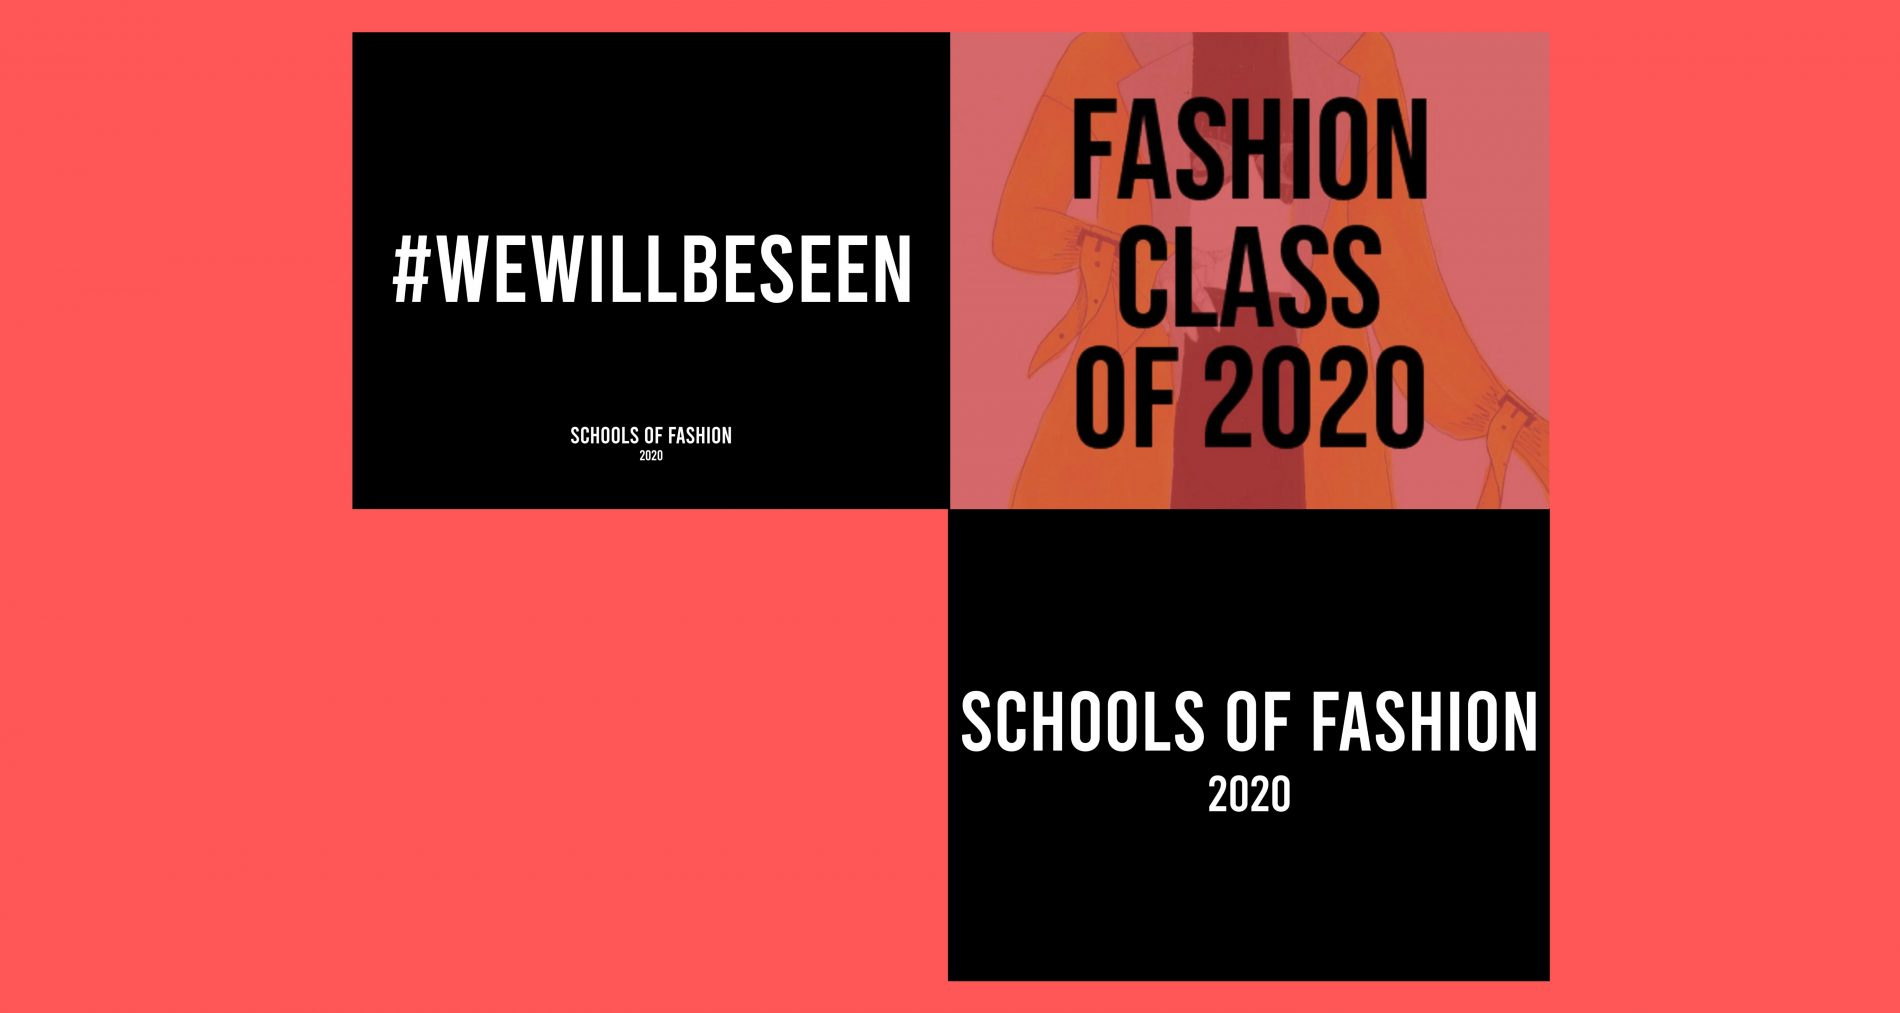 Fashion Class of 2020